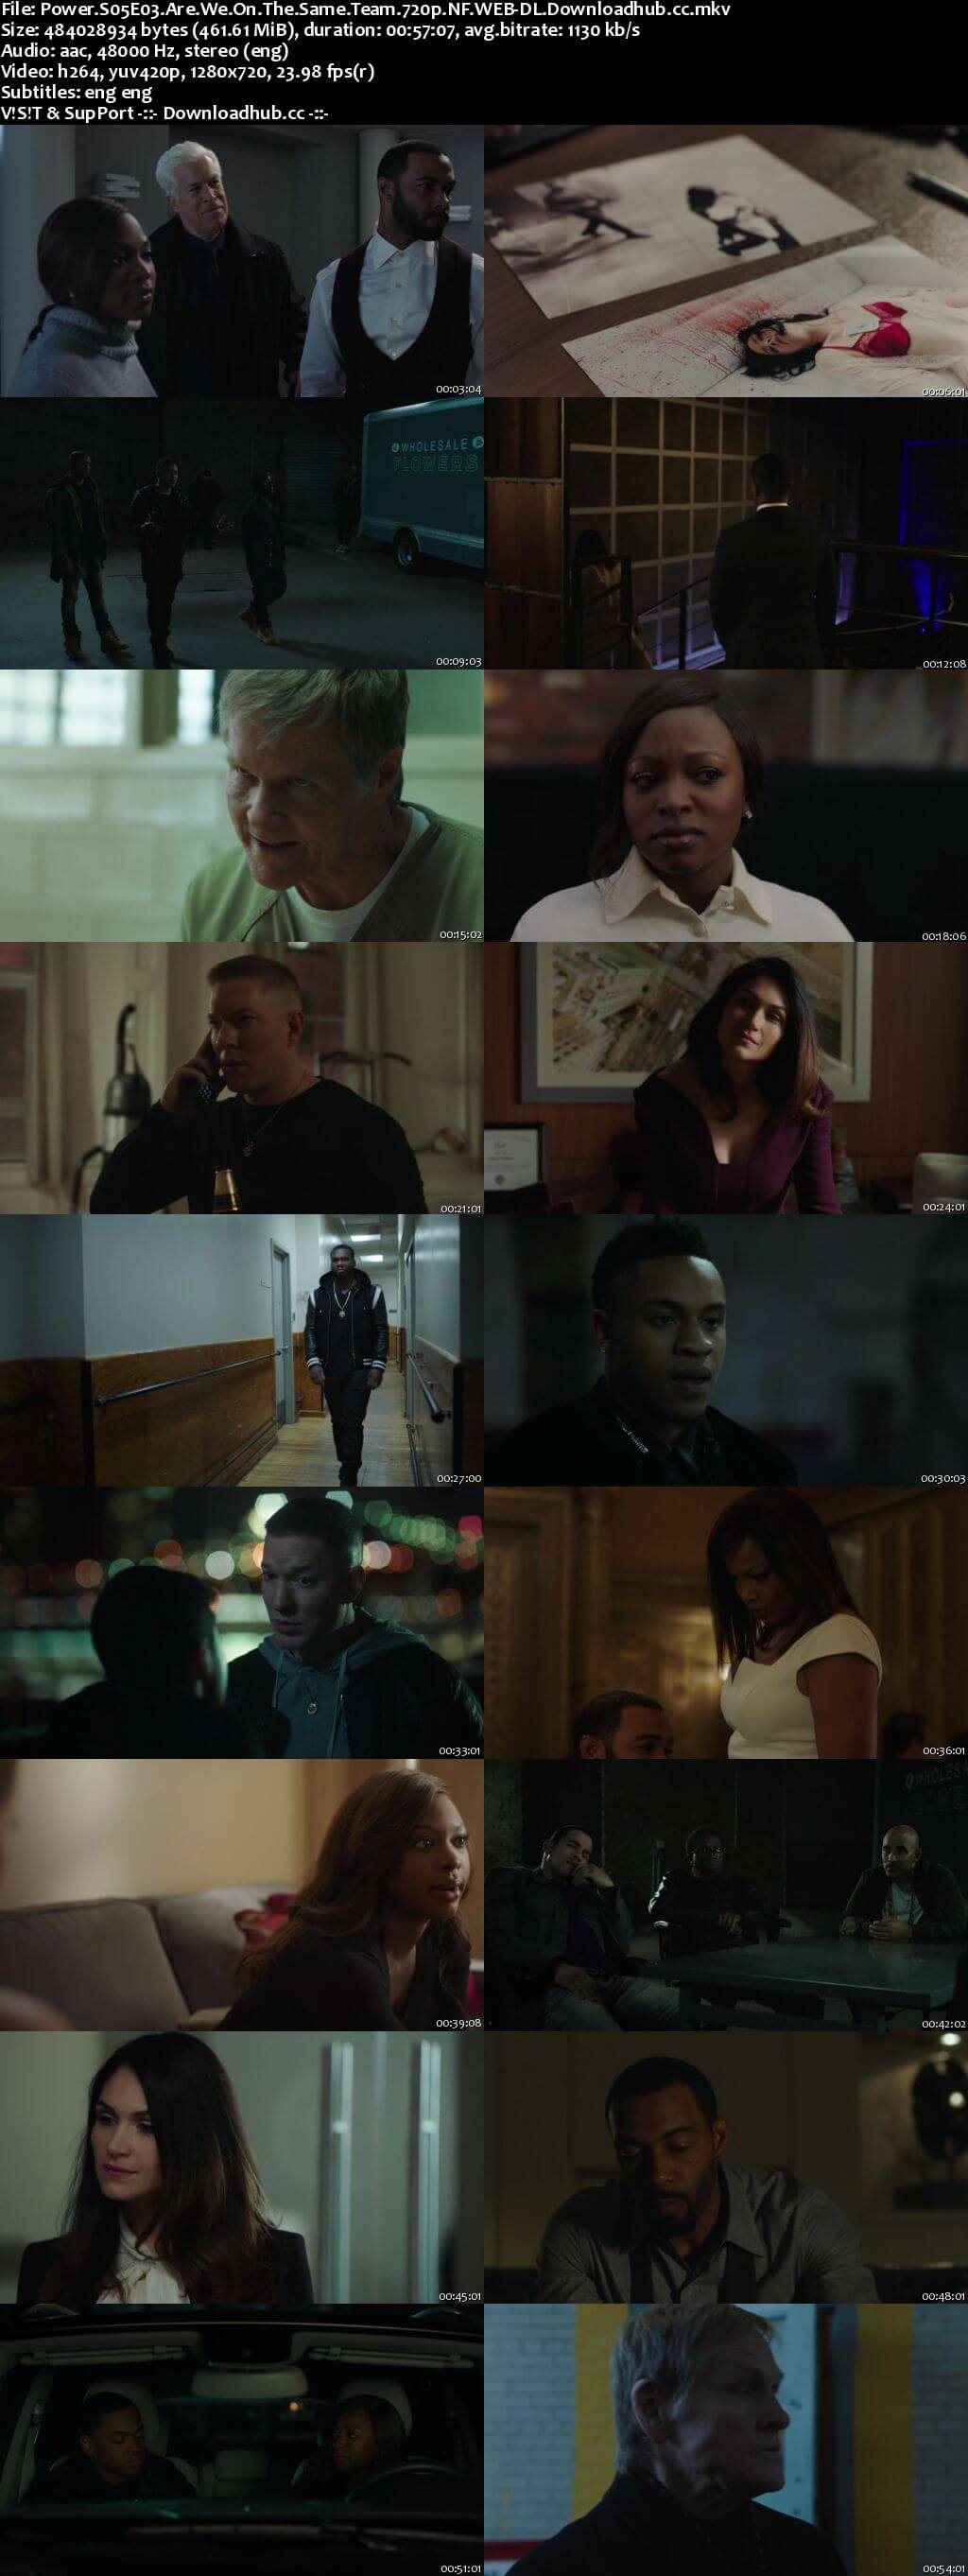 Power S05E03 450MB WEB-DL 720p x264 ESubs